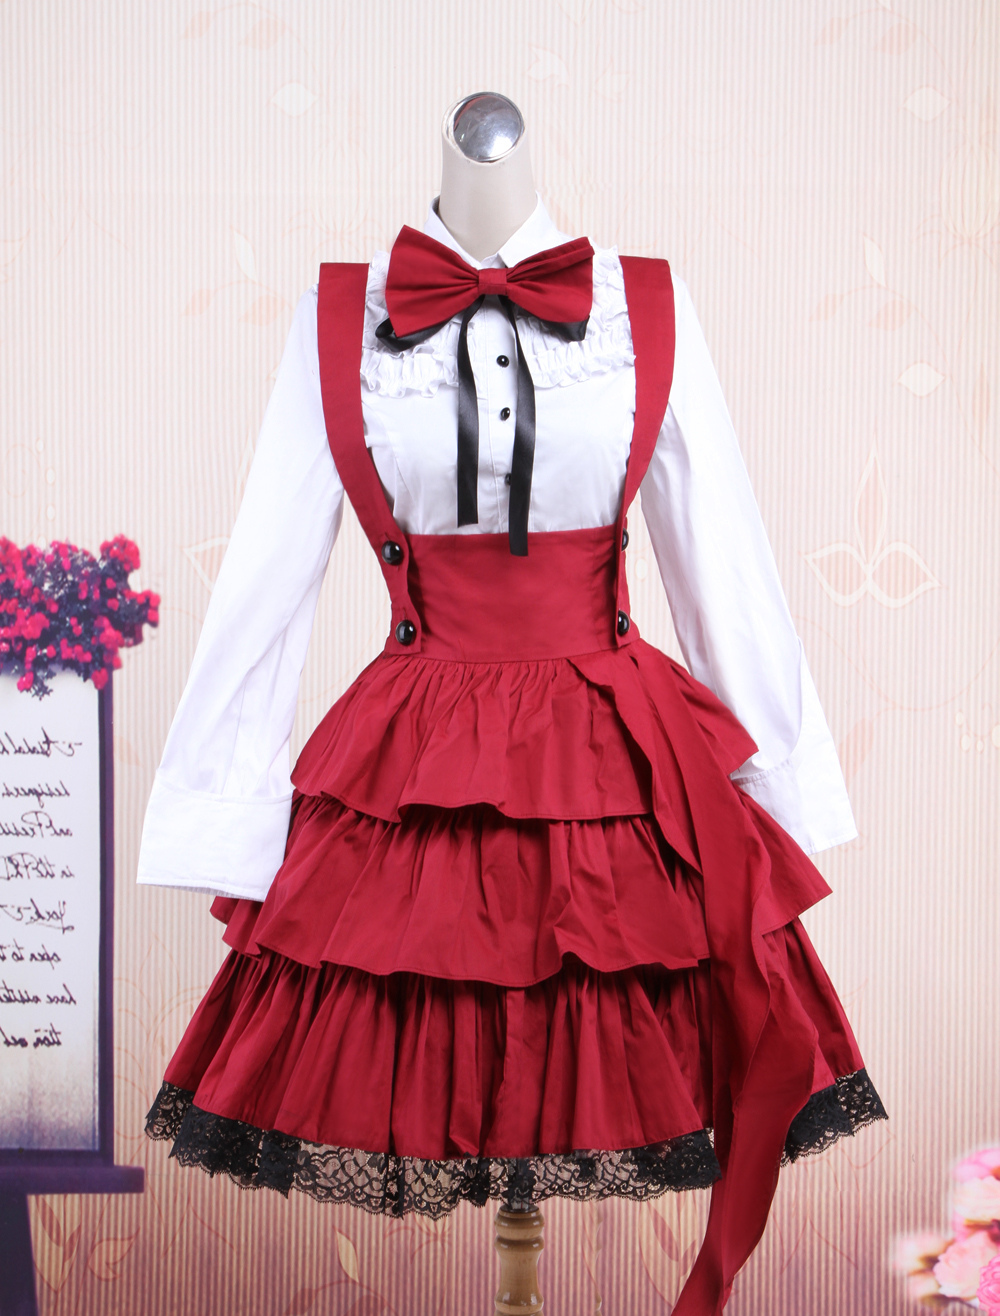 Buy Cotton White Long Sleeves Blouse And Black Ruffles Lolita Skirt Outfit for $78.29 in Milanoo store